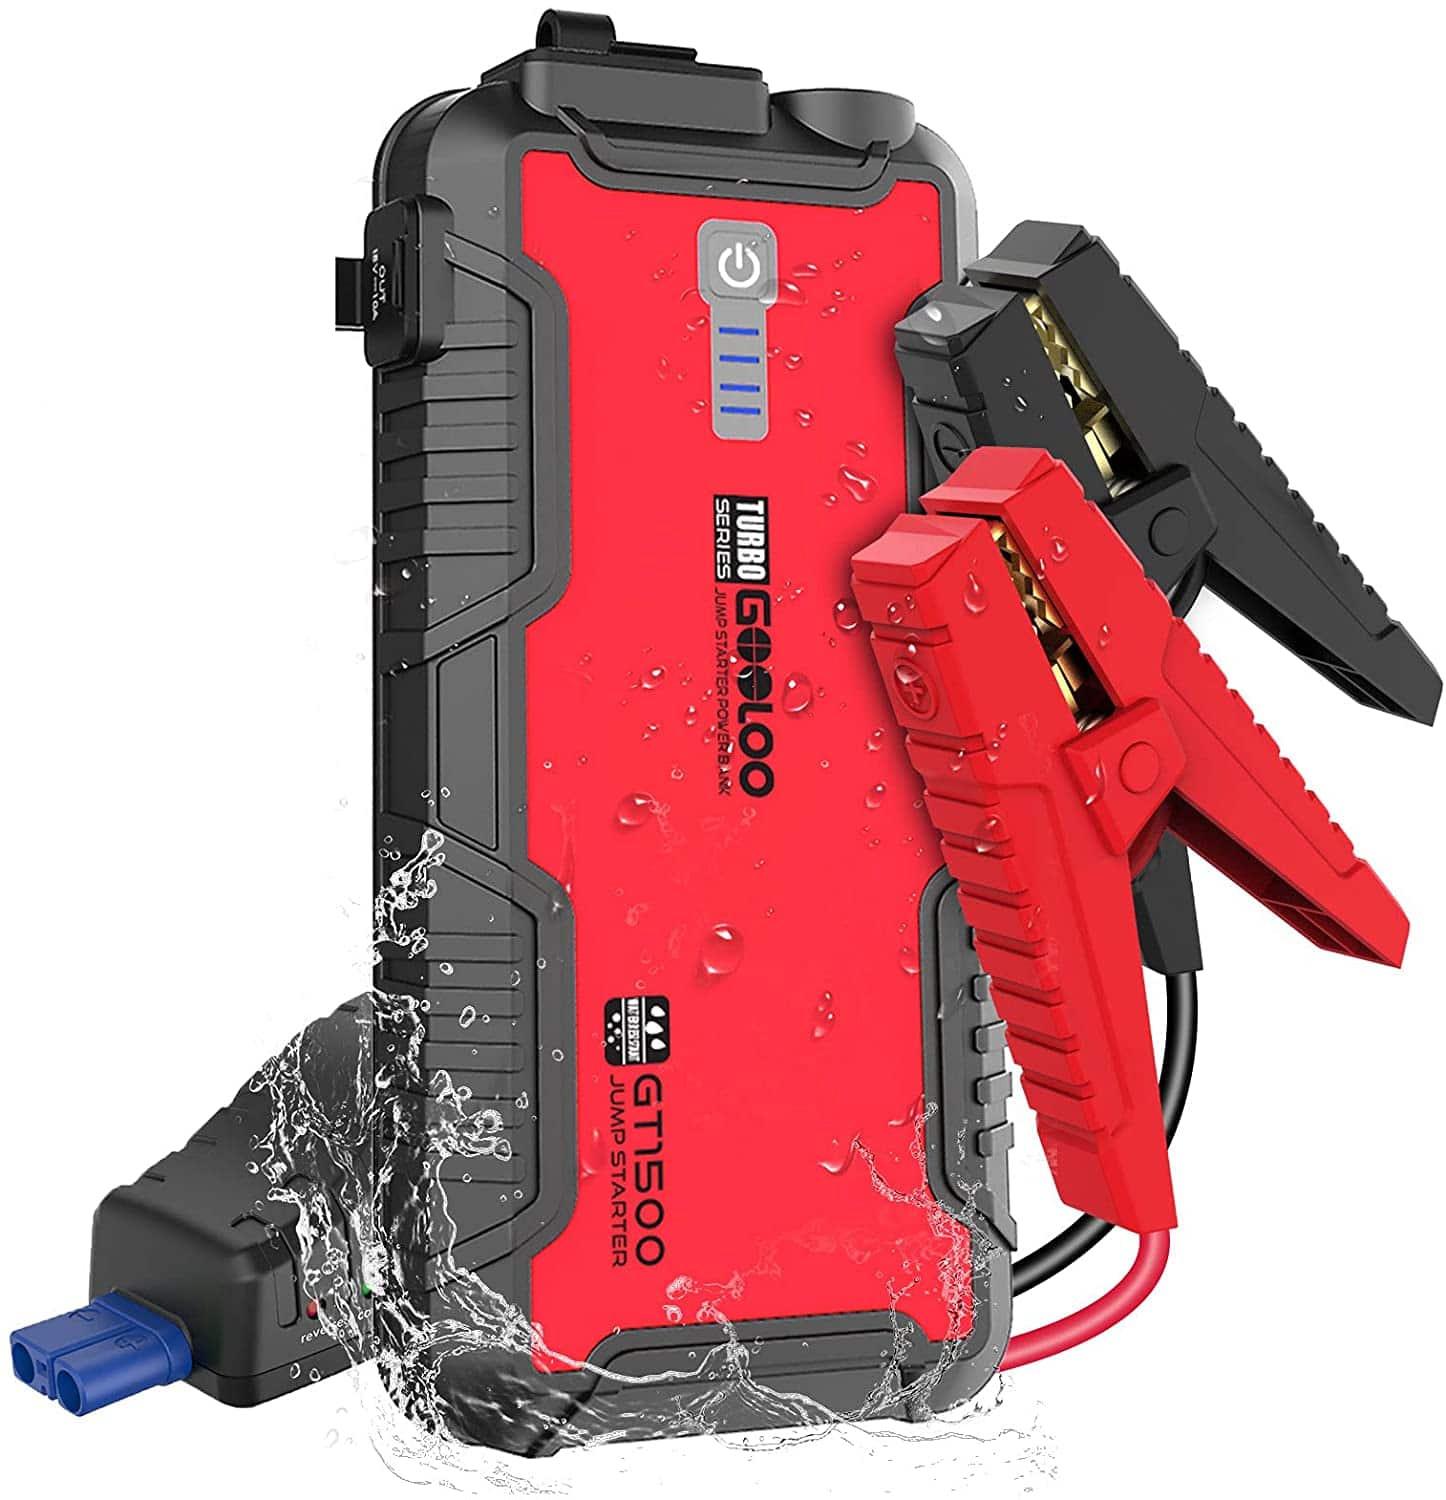 Gooloo 12V 1500A Peak Jump Starter Water Resistant Car Booster for Up to 8.0L Gas or 6.0L Diesel Engine $43.43